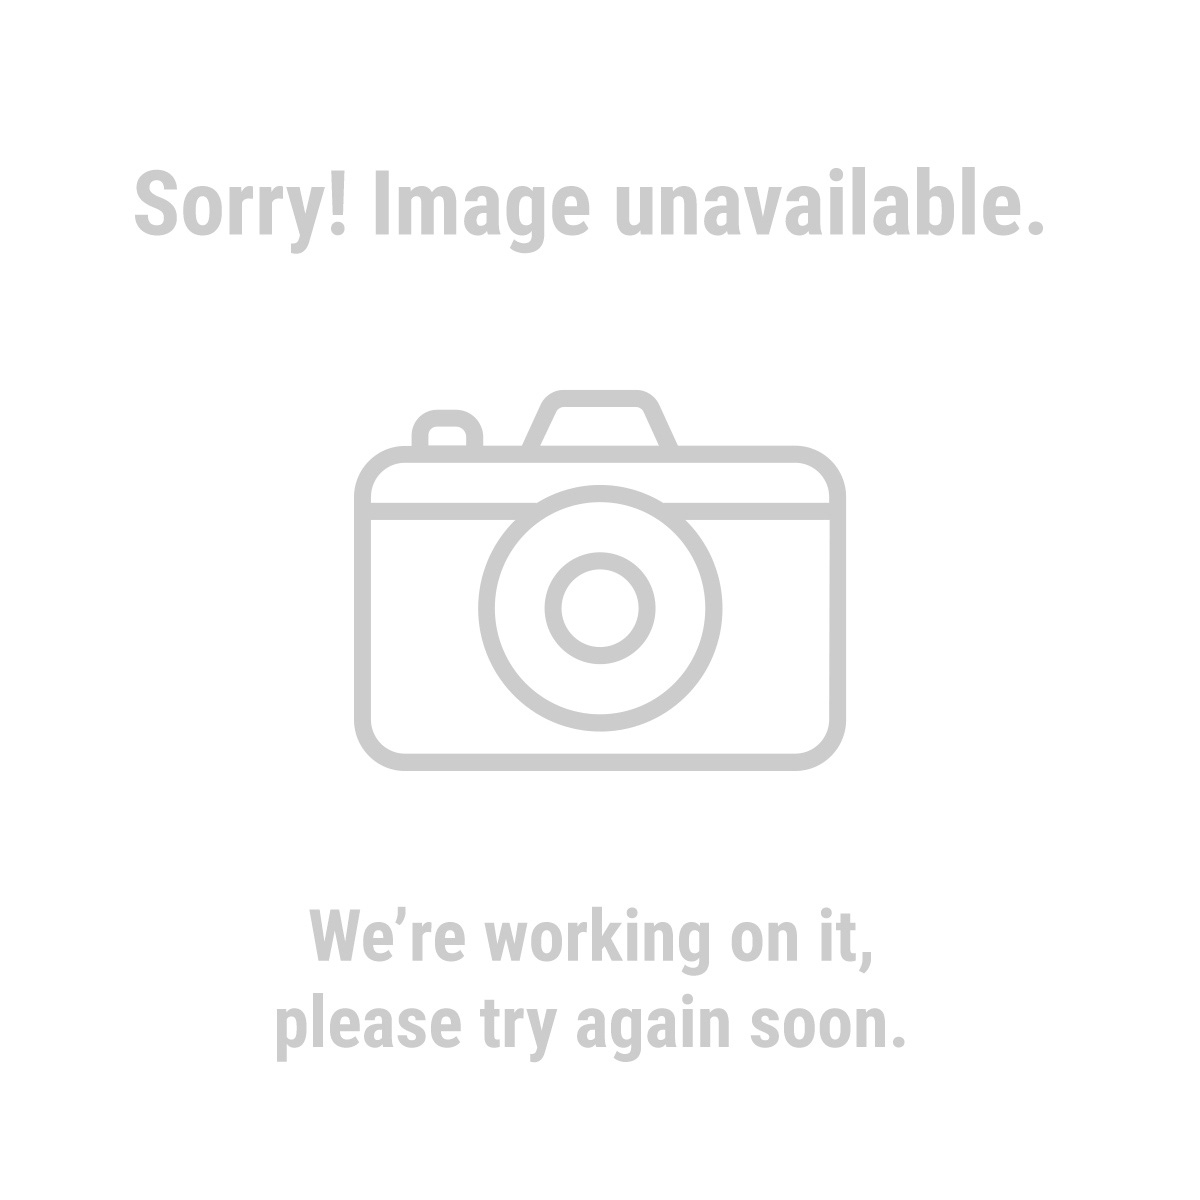 Pittsburgh 62600 7 Pc Pliers Set